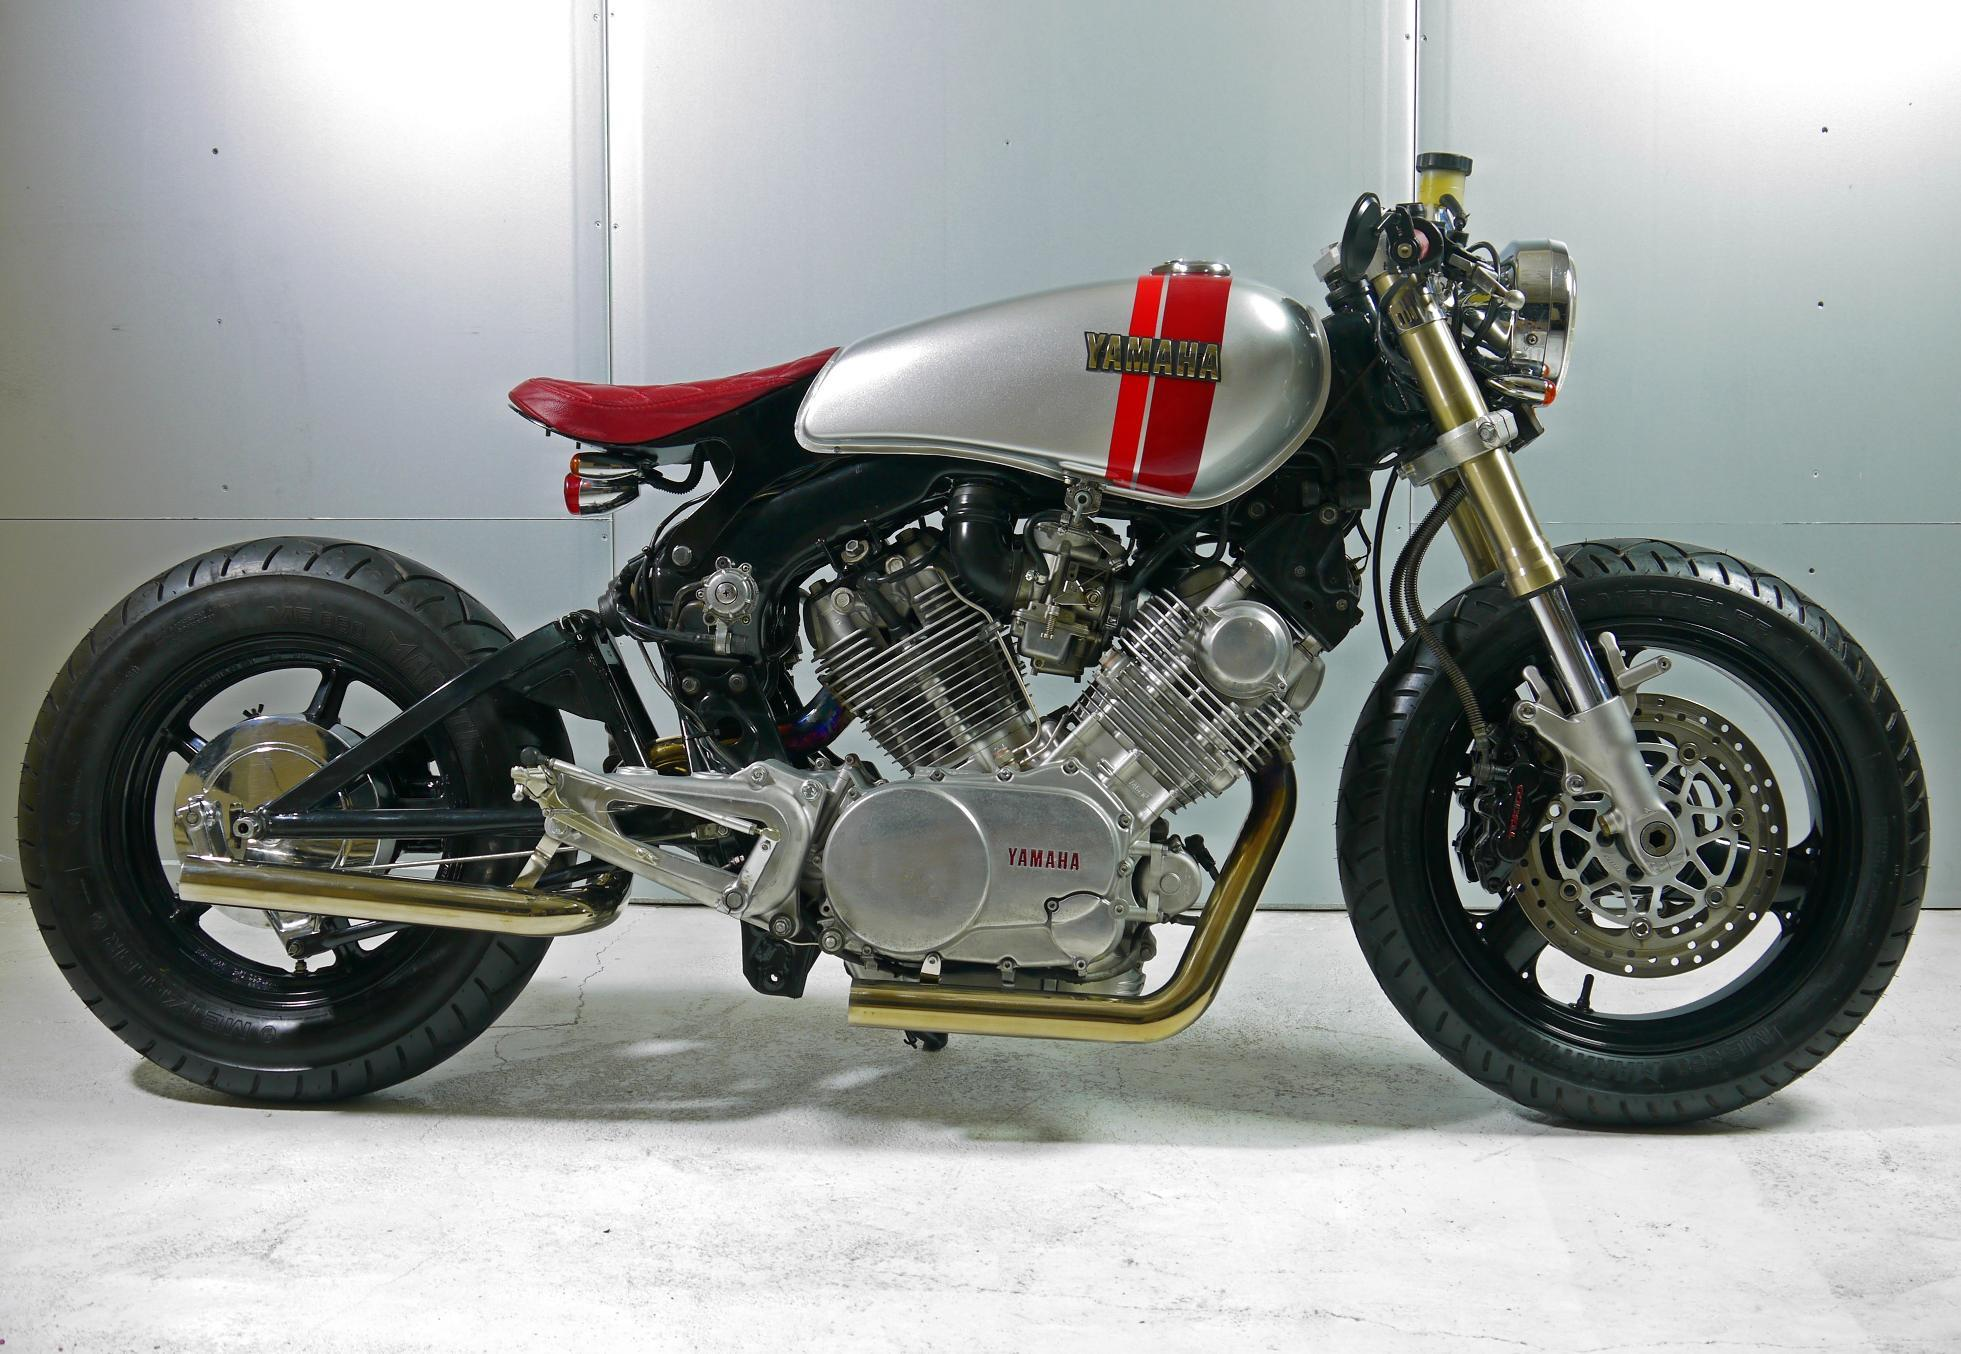 Yamaha XV750 by Ugly Motors